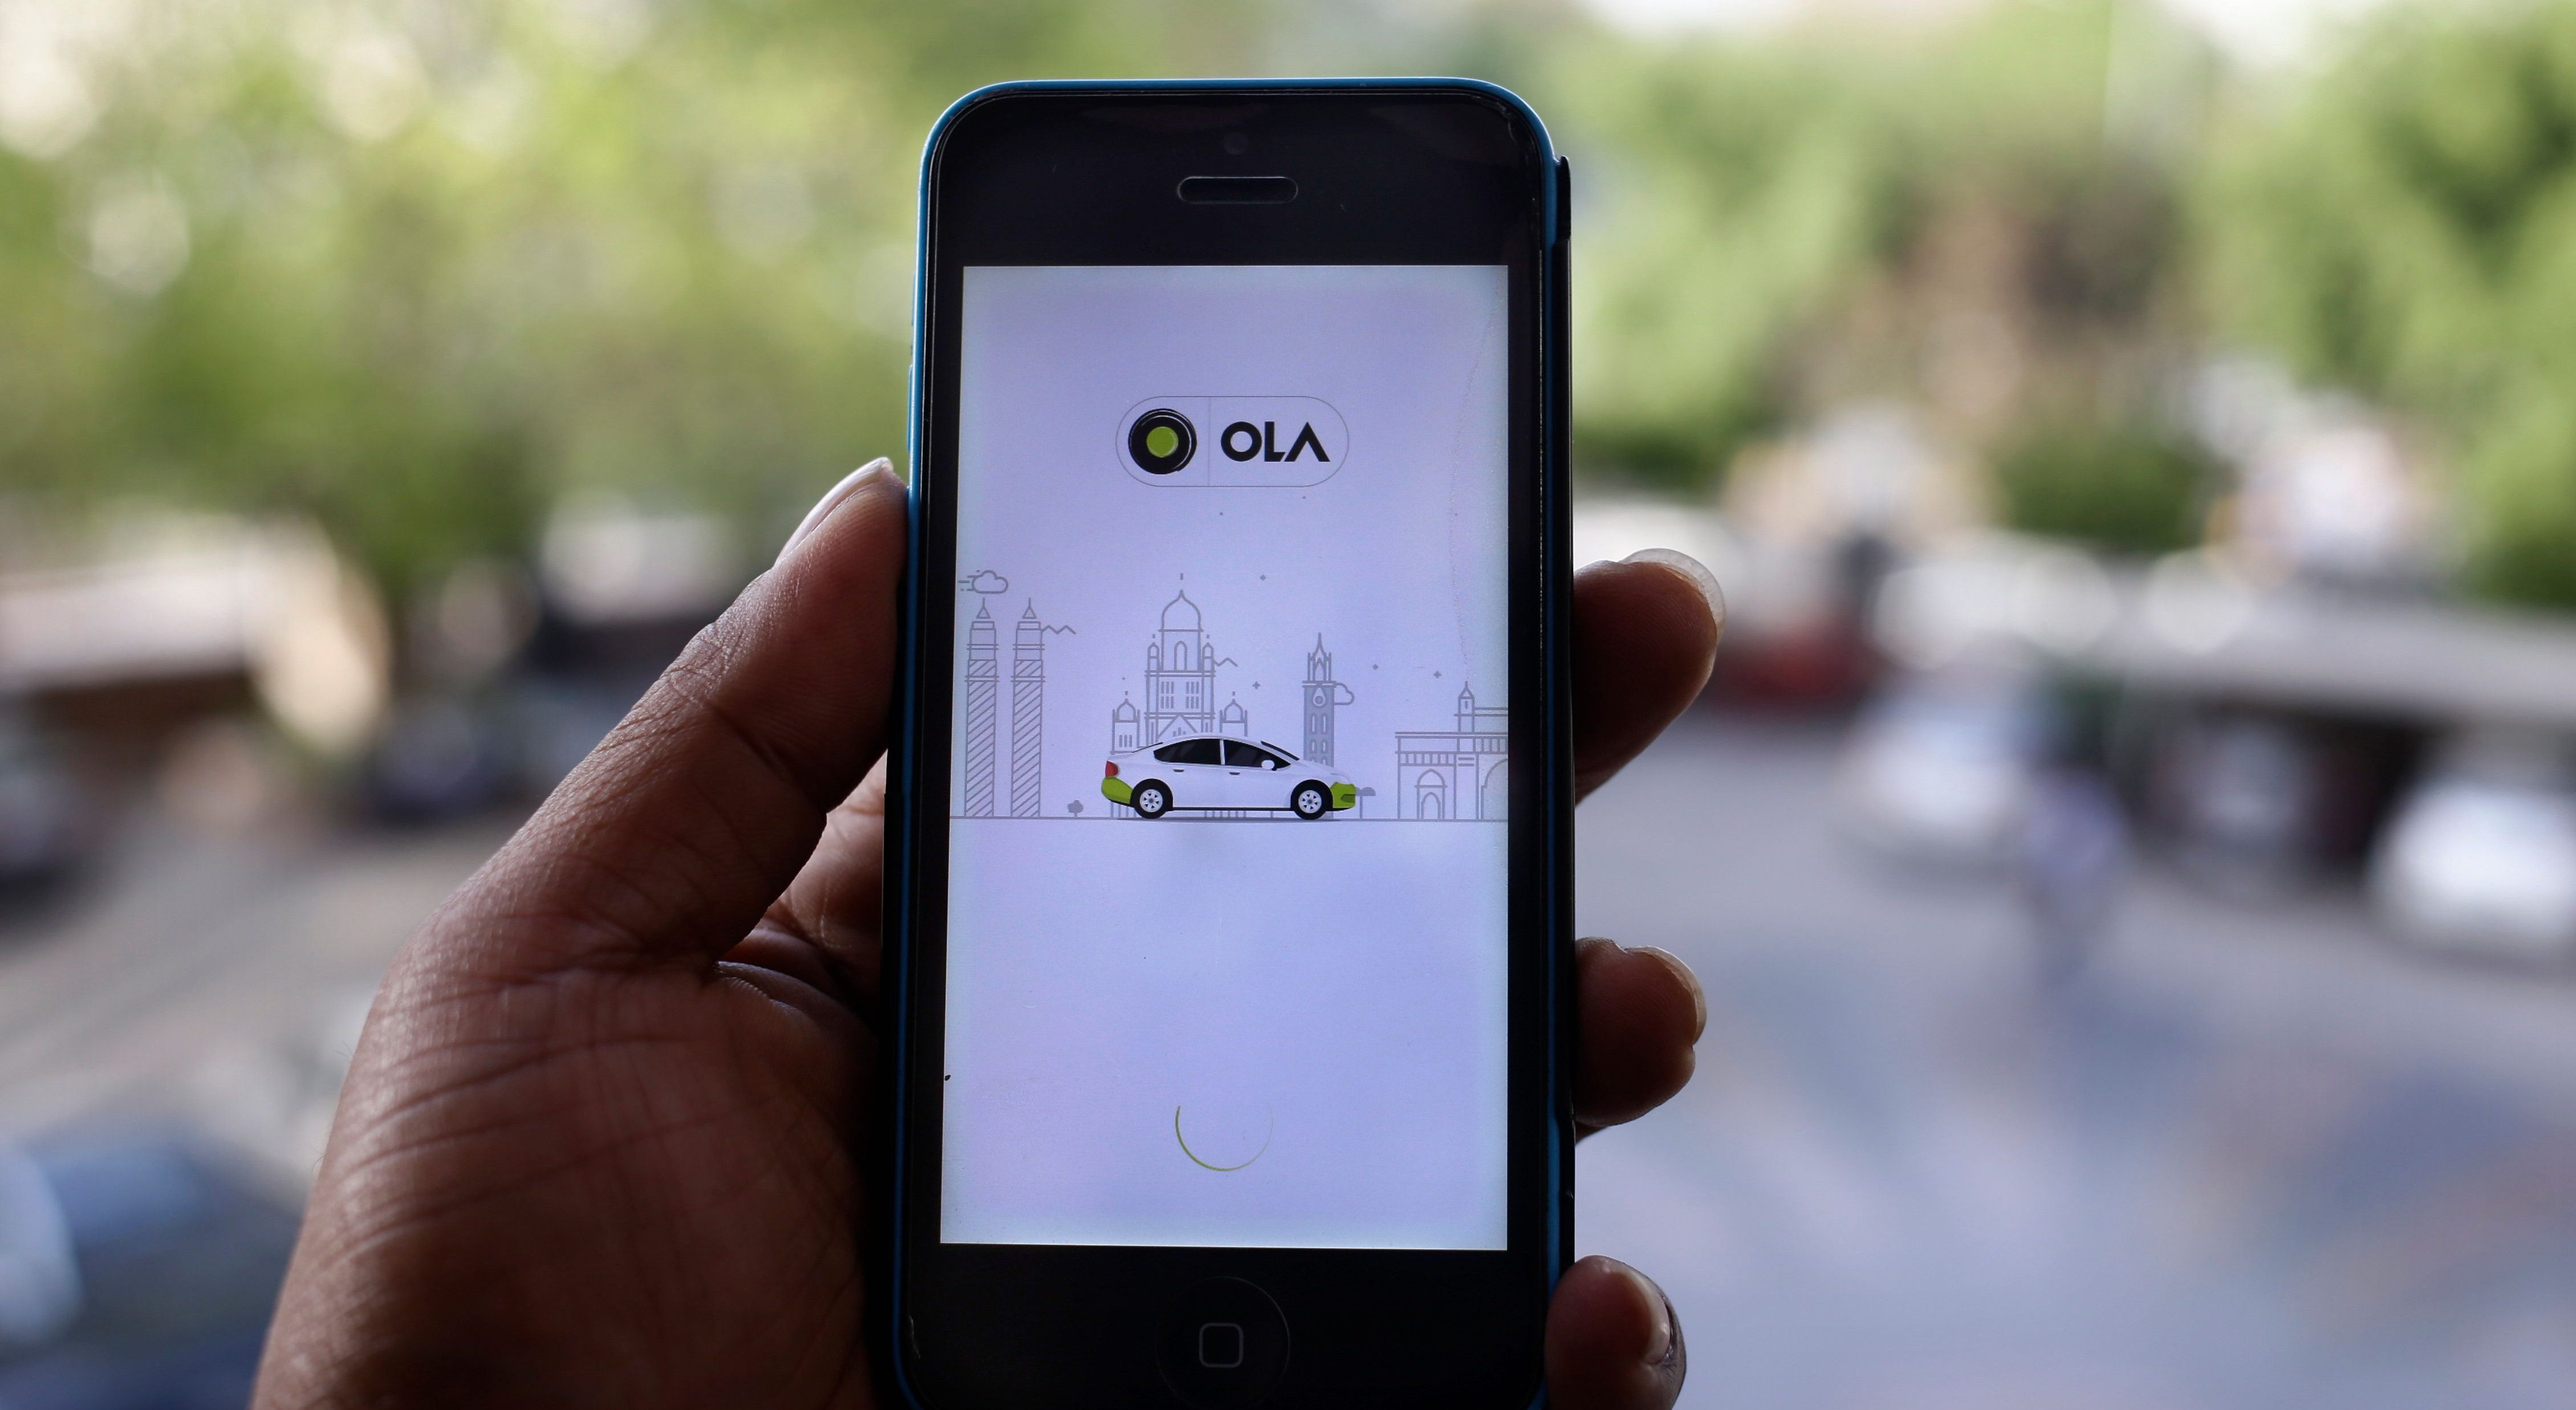 Ola's cab-hailing smartphone app is seen on a mobile phone in New Delhi, India, Tuesday, March 29, 2016. Aiming to wrest control of India's booming taxi market, two cab-hailing smartphone apps _ Uber and Ola _ are promising hundreds of millions in new investment while also facing off with one another in court.